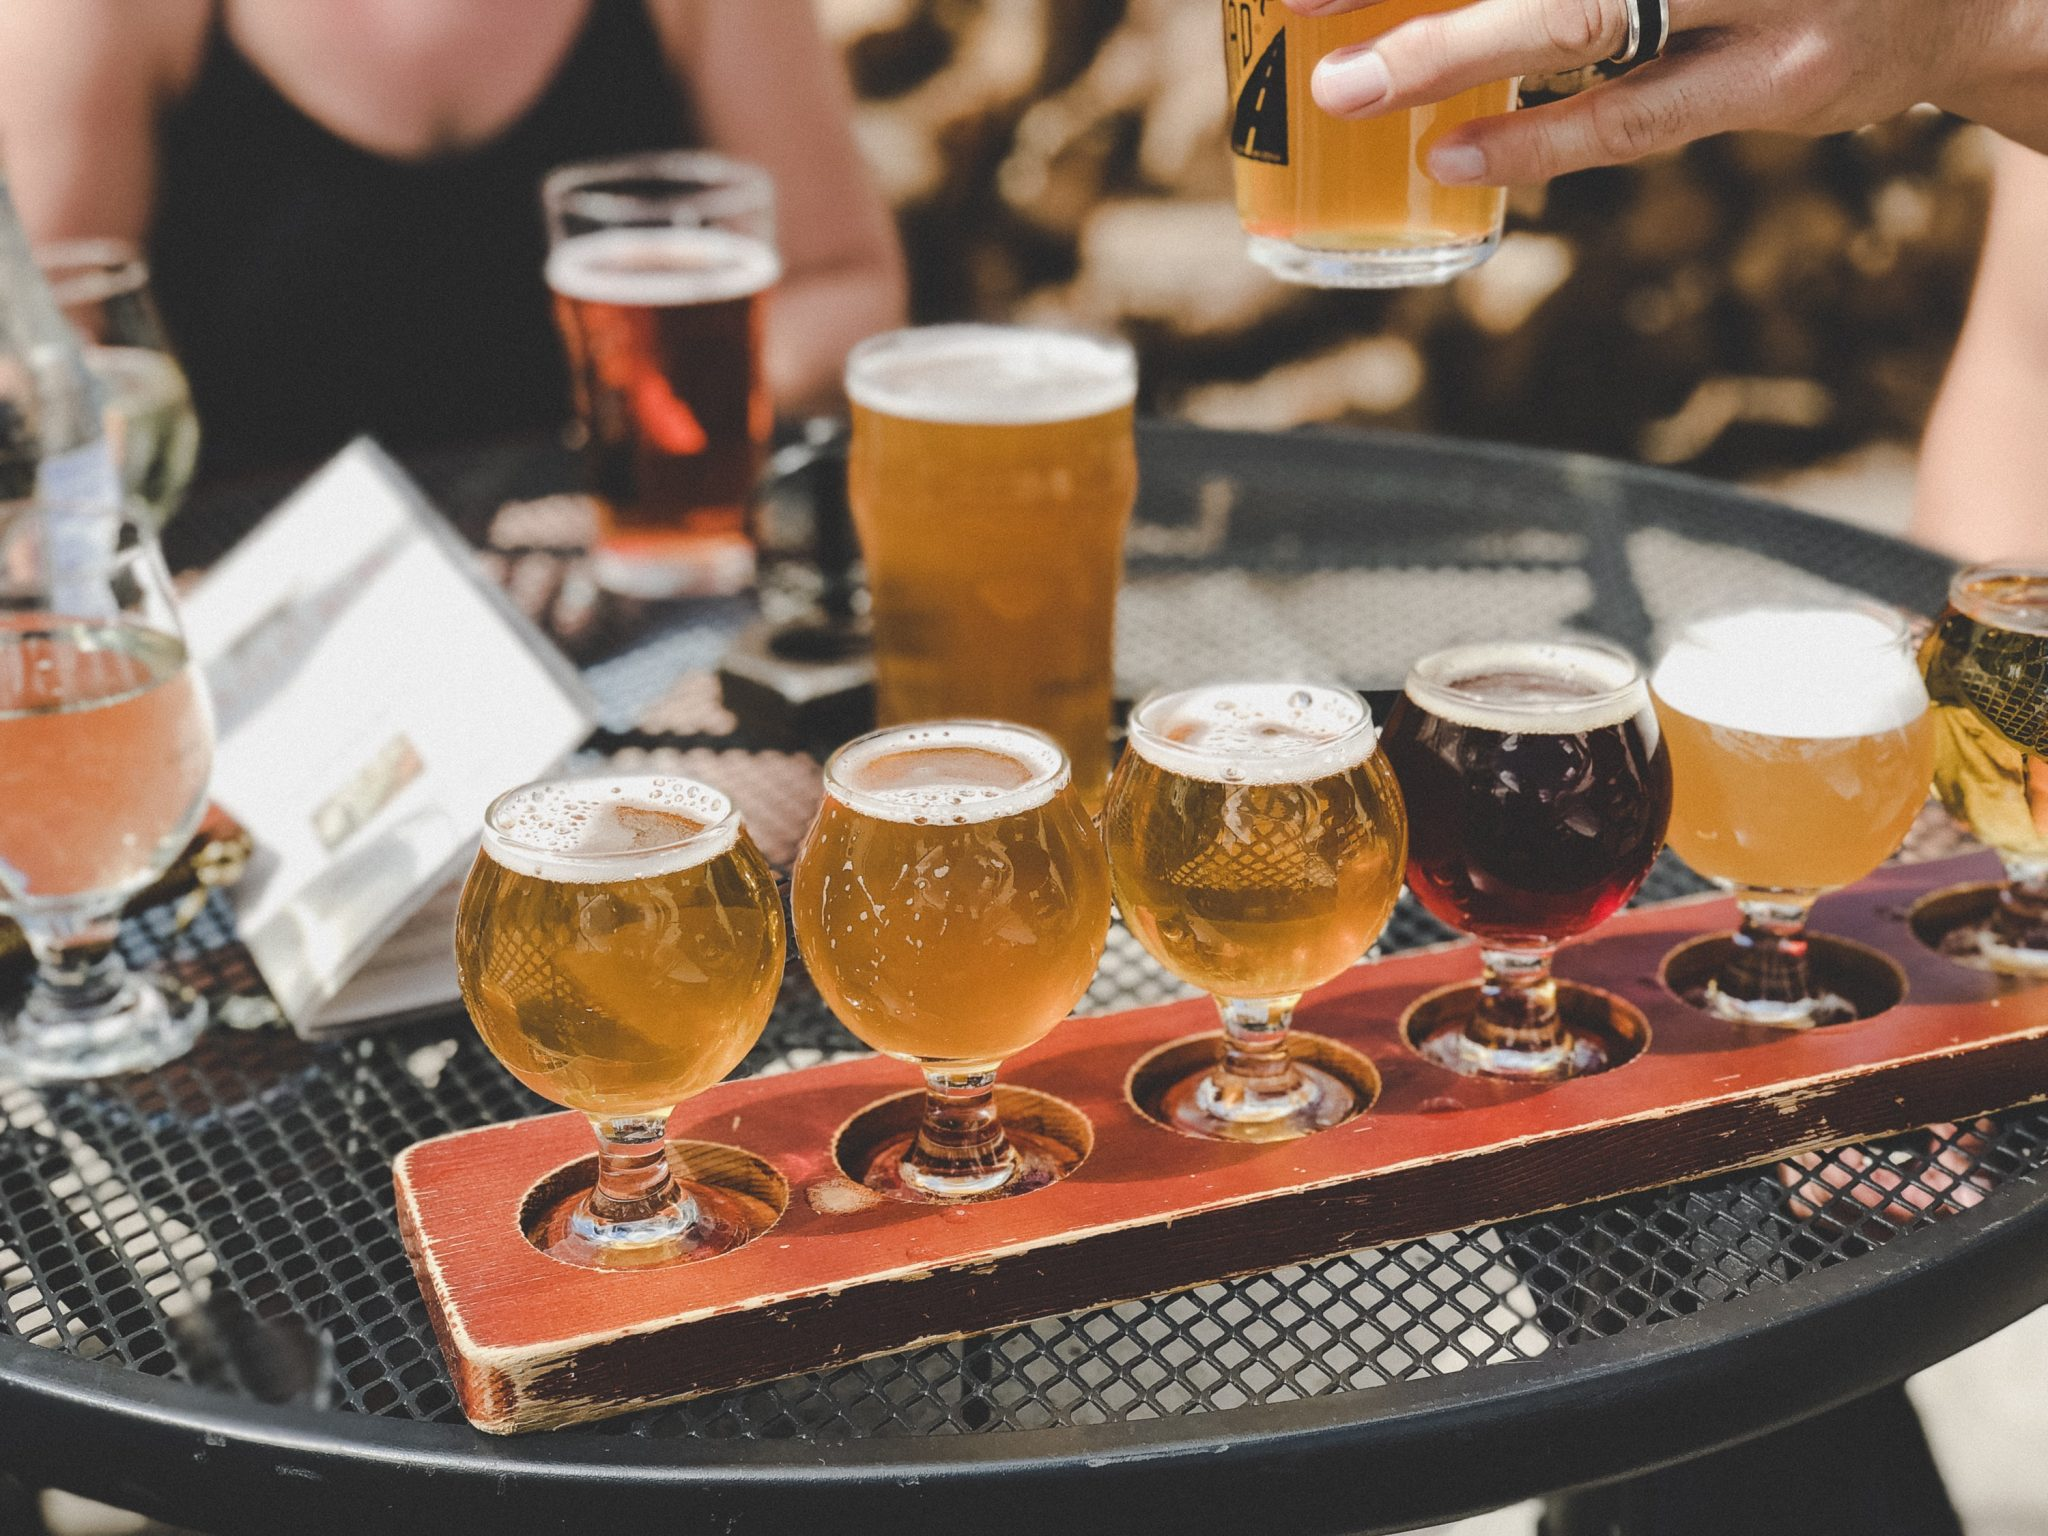 beer tasting, how do i know if i need to control my drinking